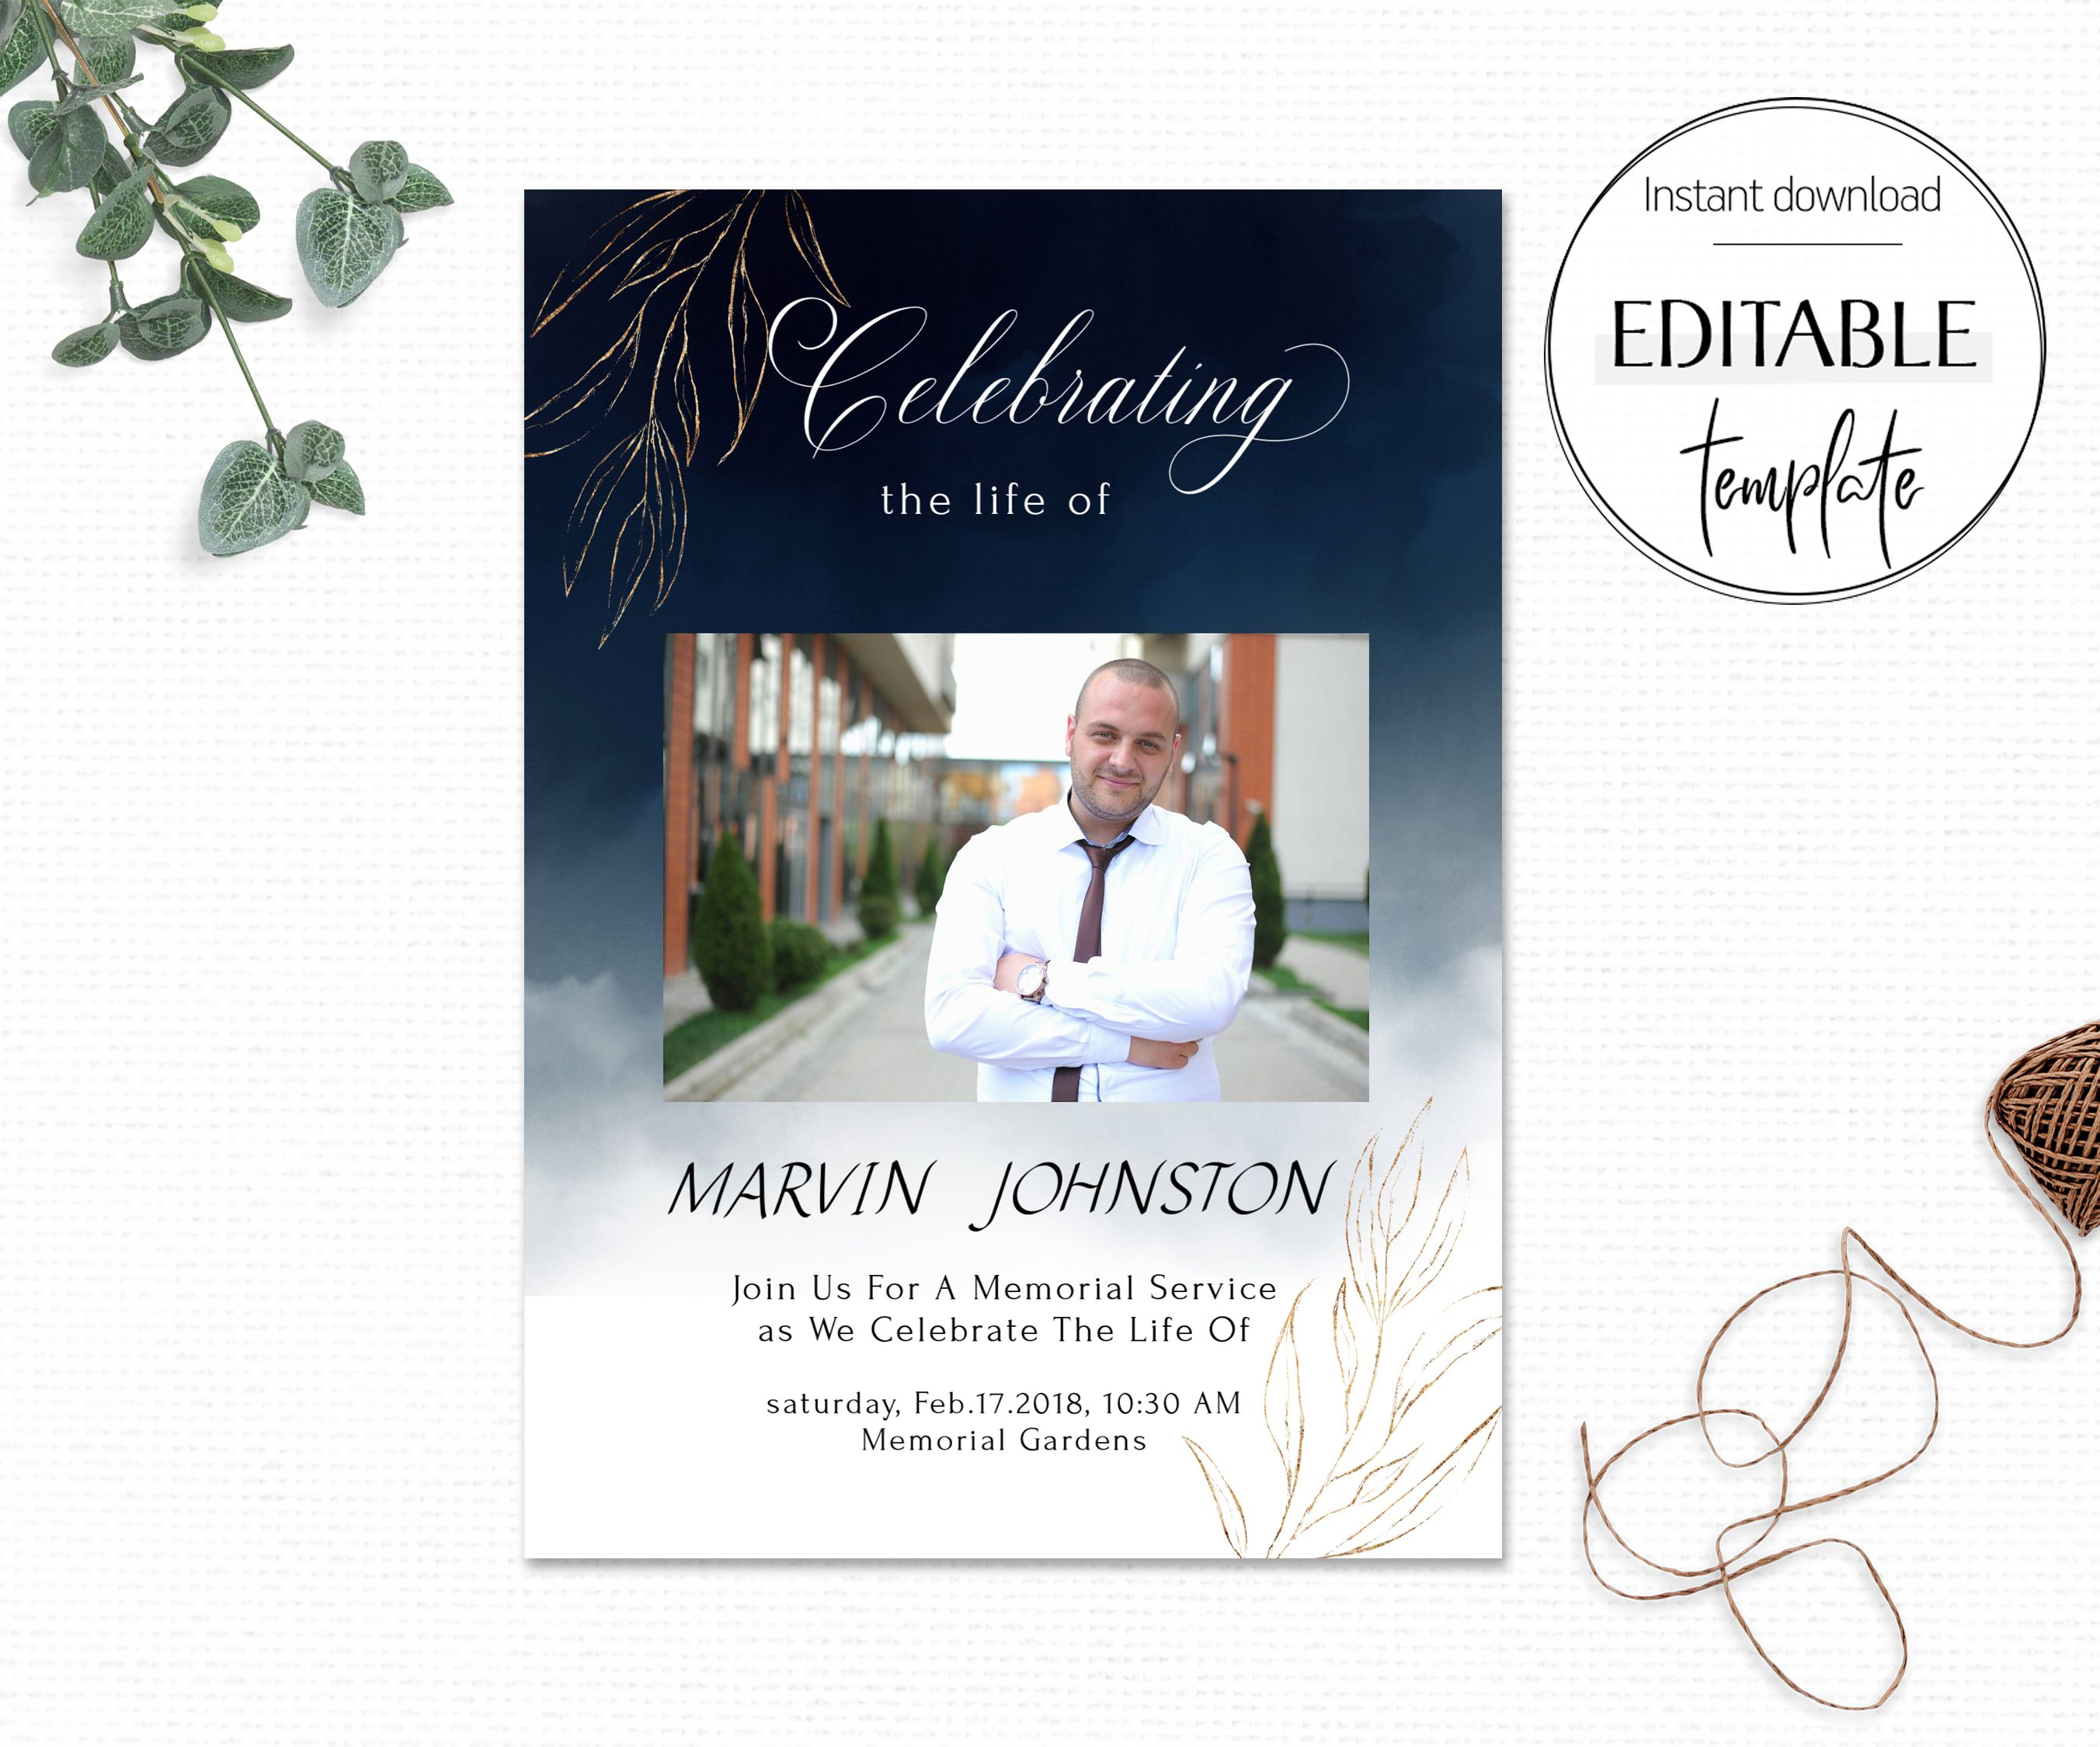 007 Rare Celebration Of Life Invite Template Free Image  Invitation Download